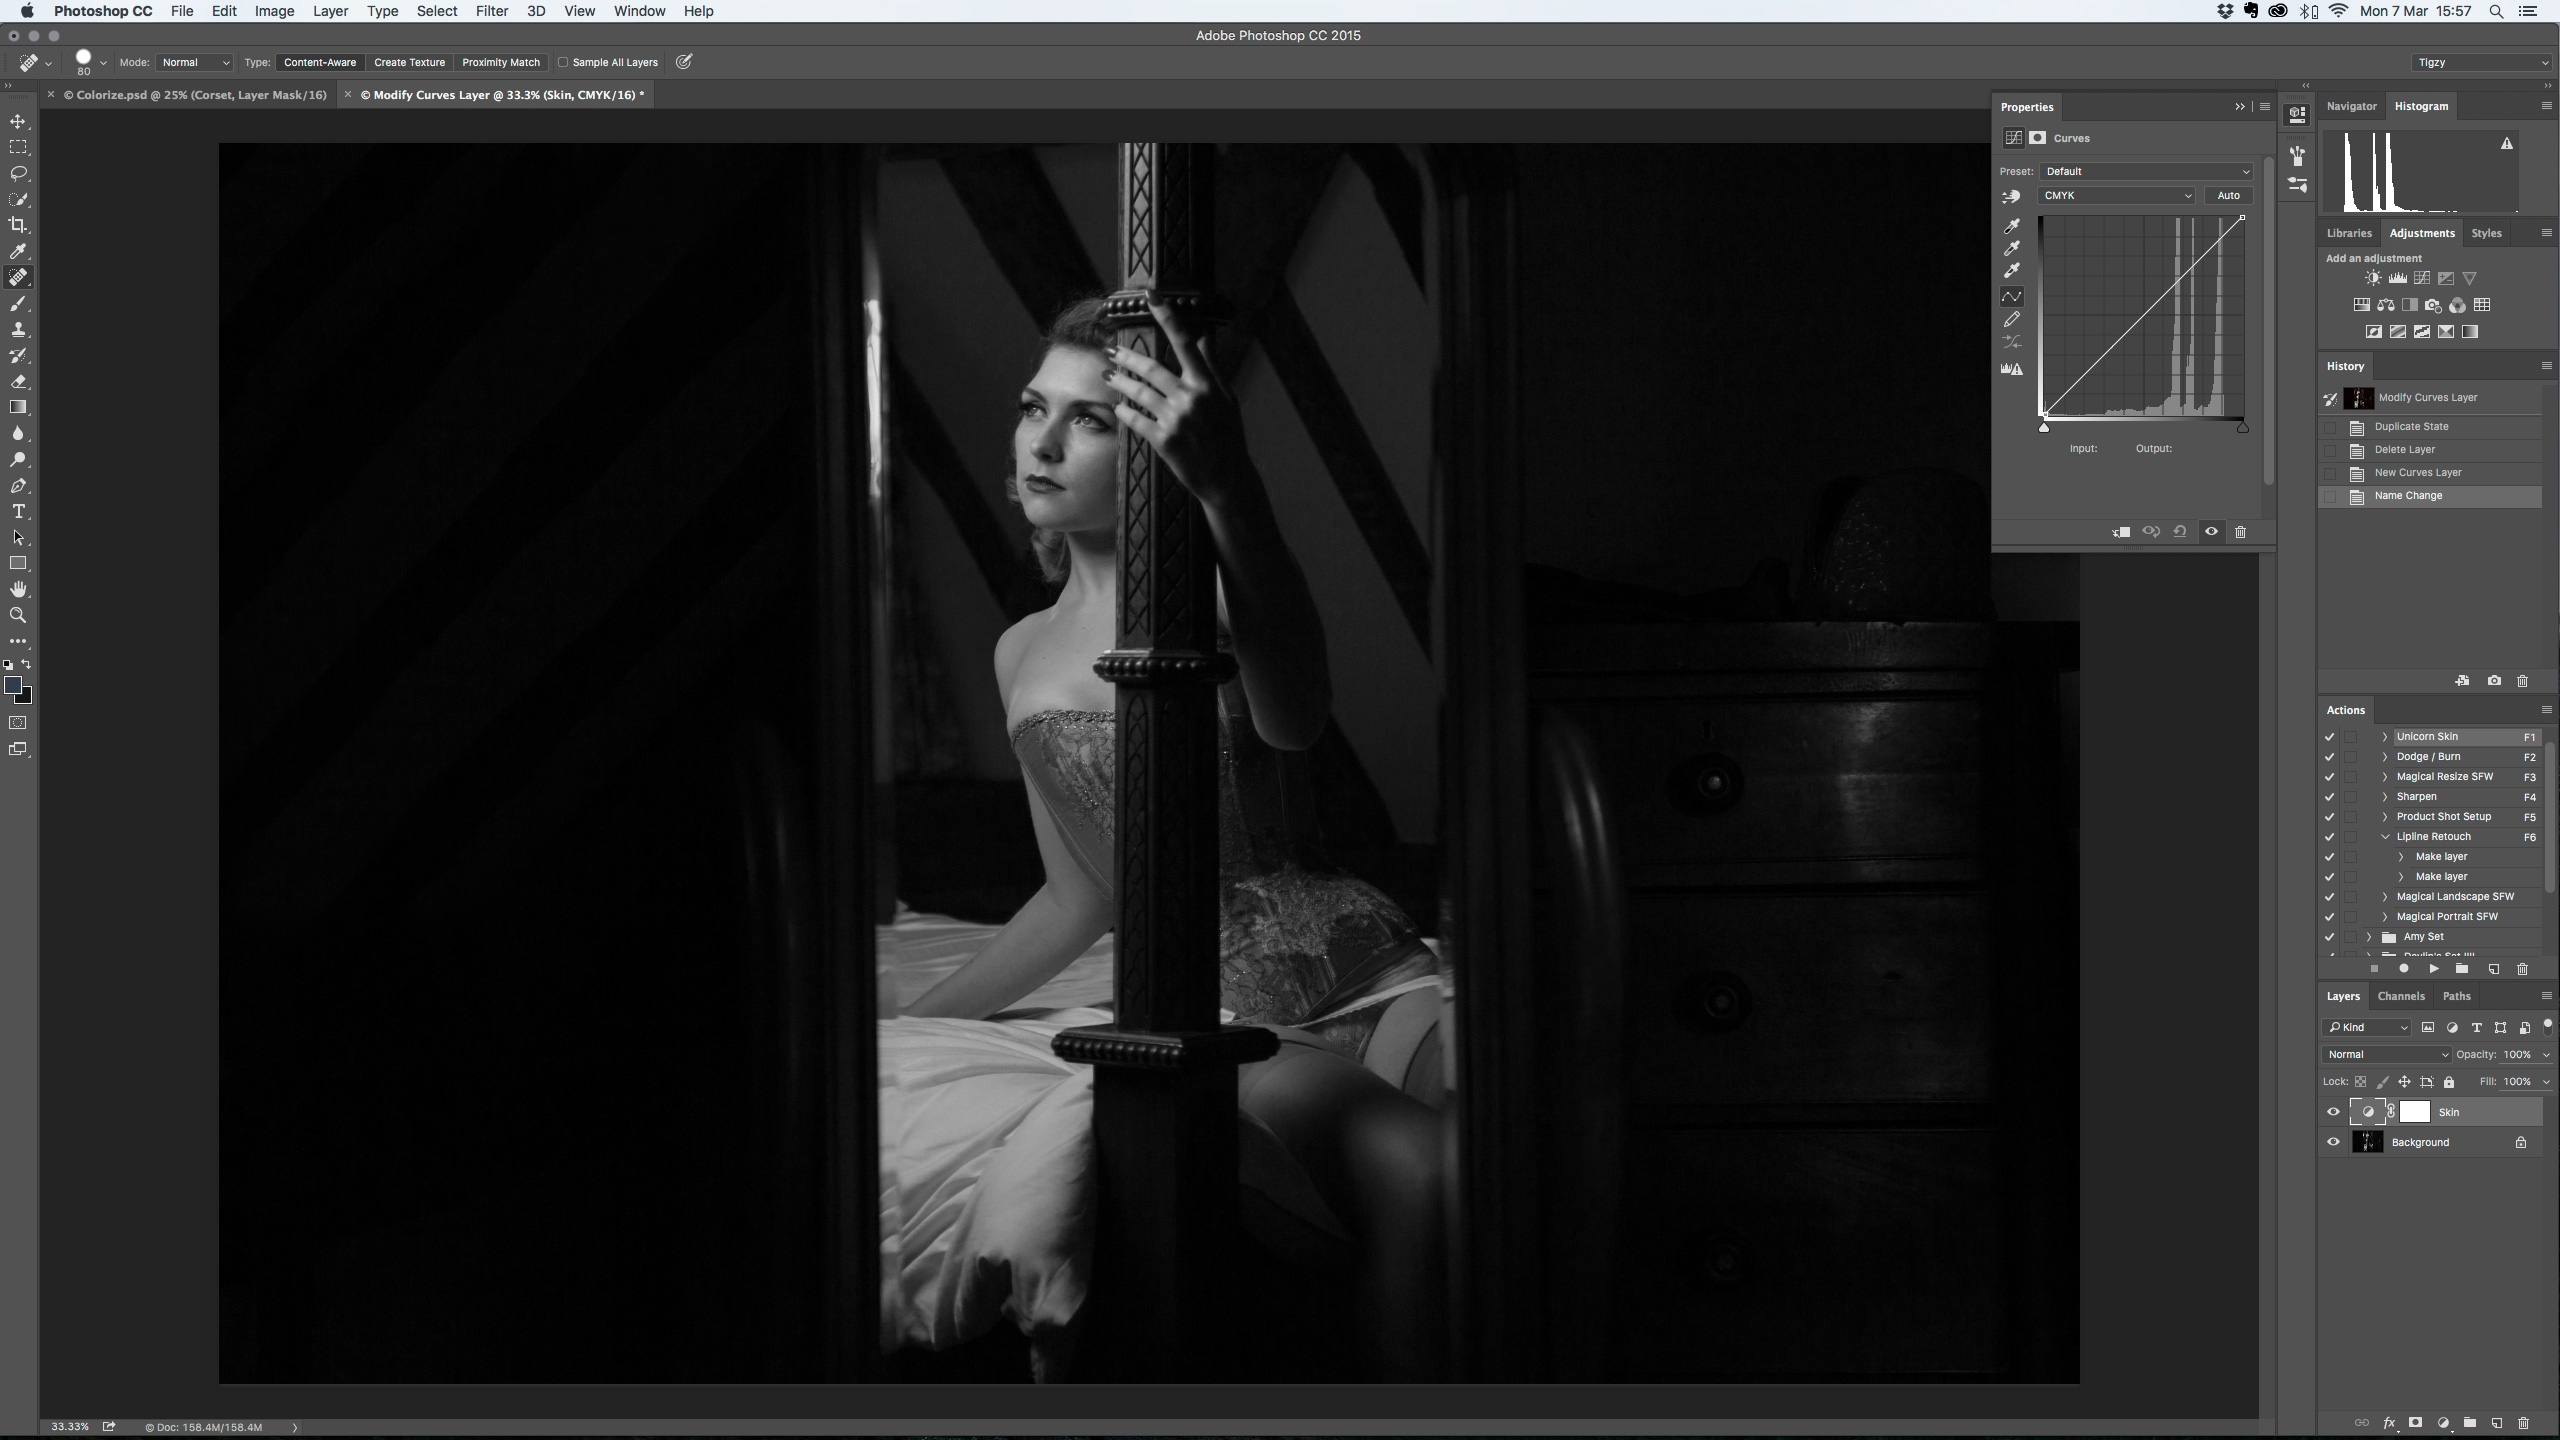 Photoshop tutorial how to colourise a black and white photo in photoshop